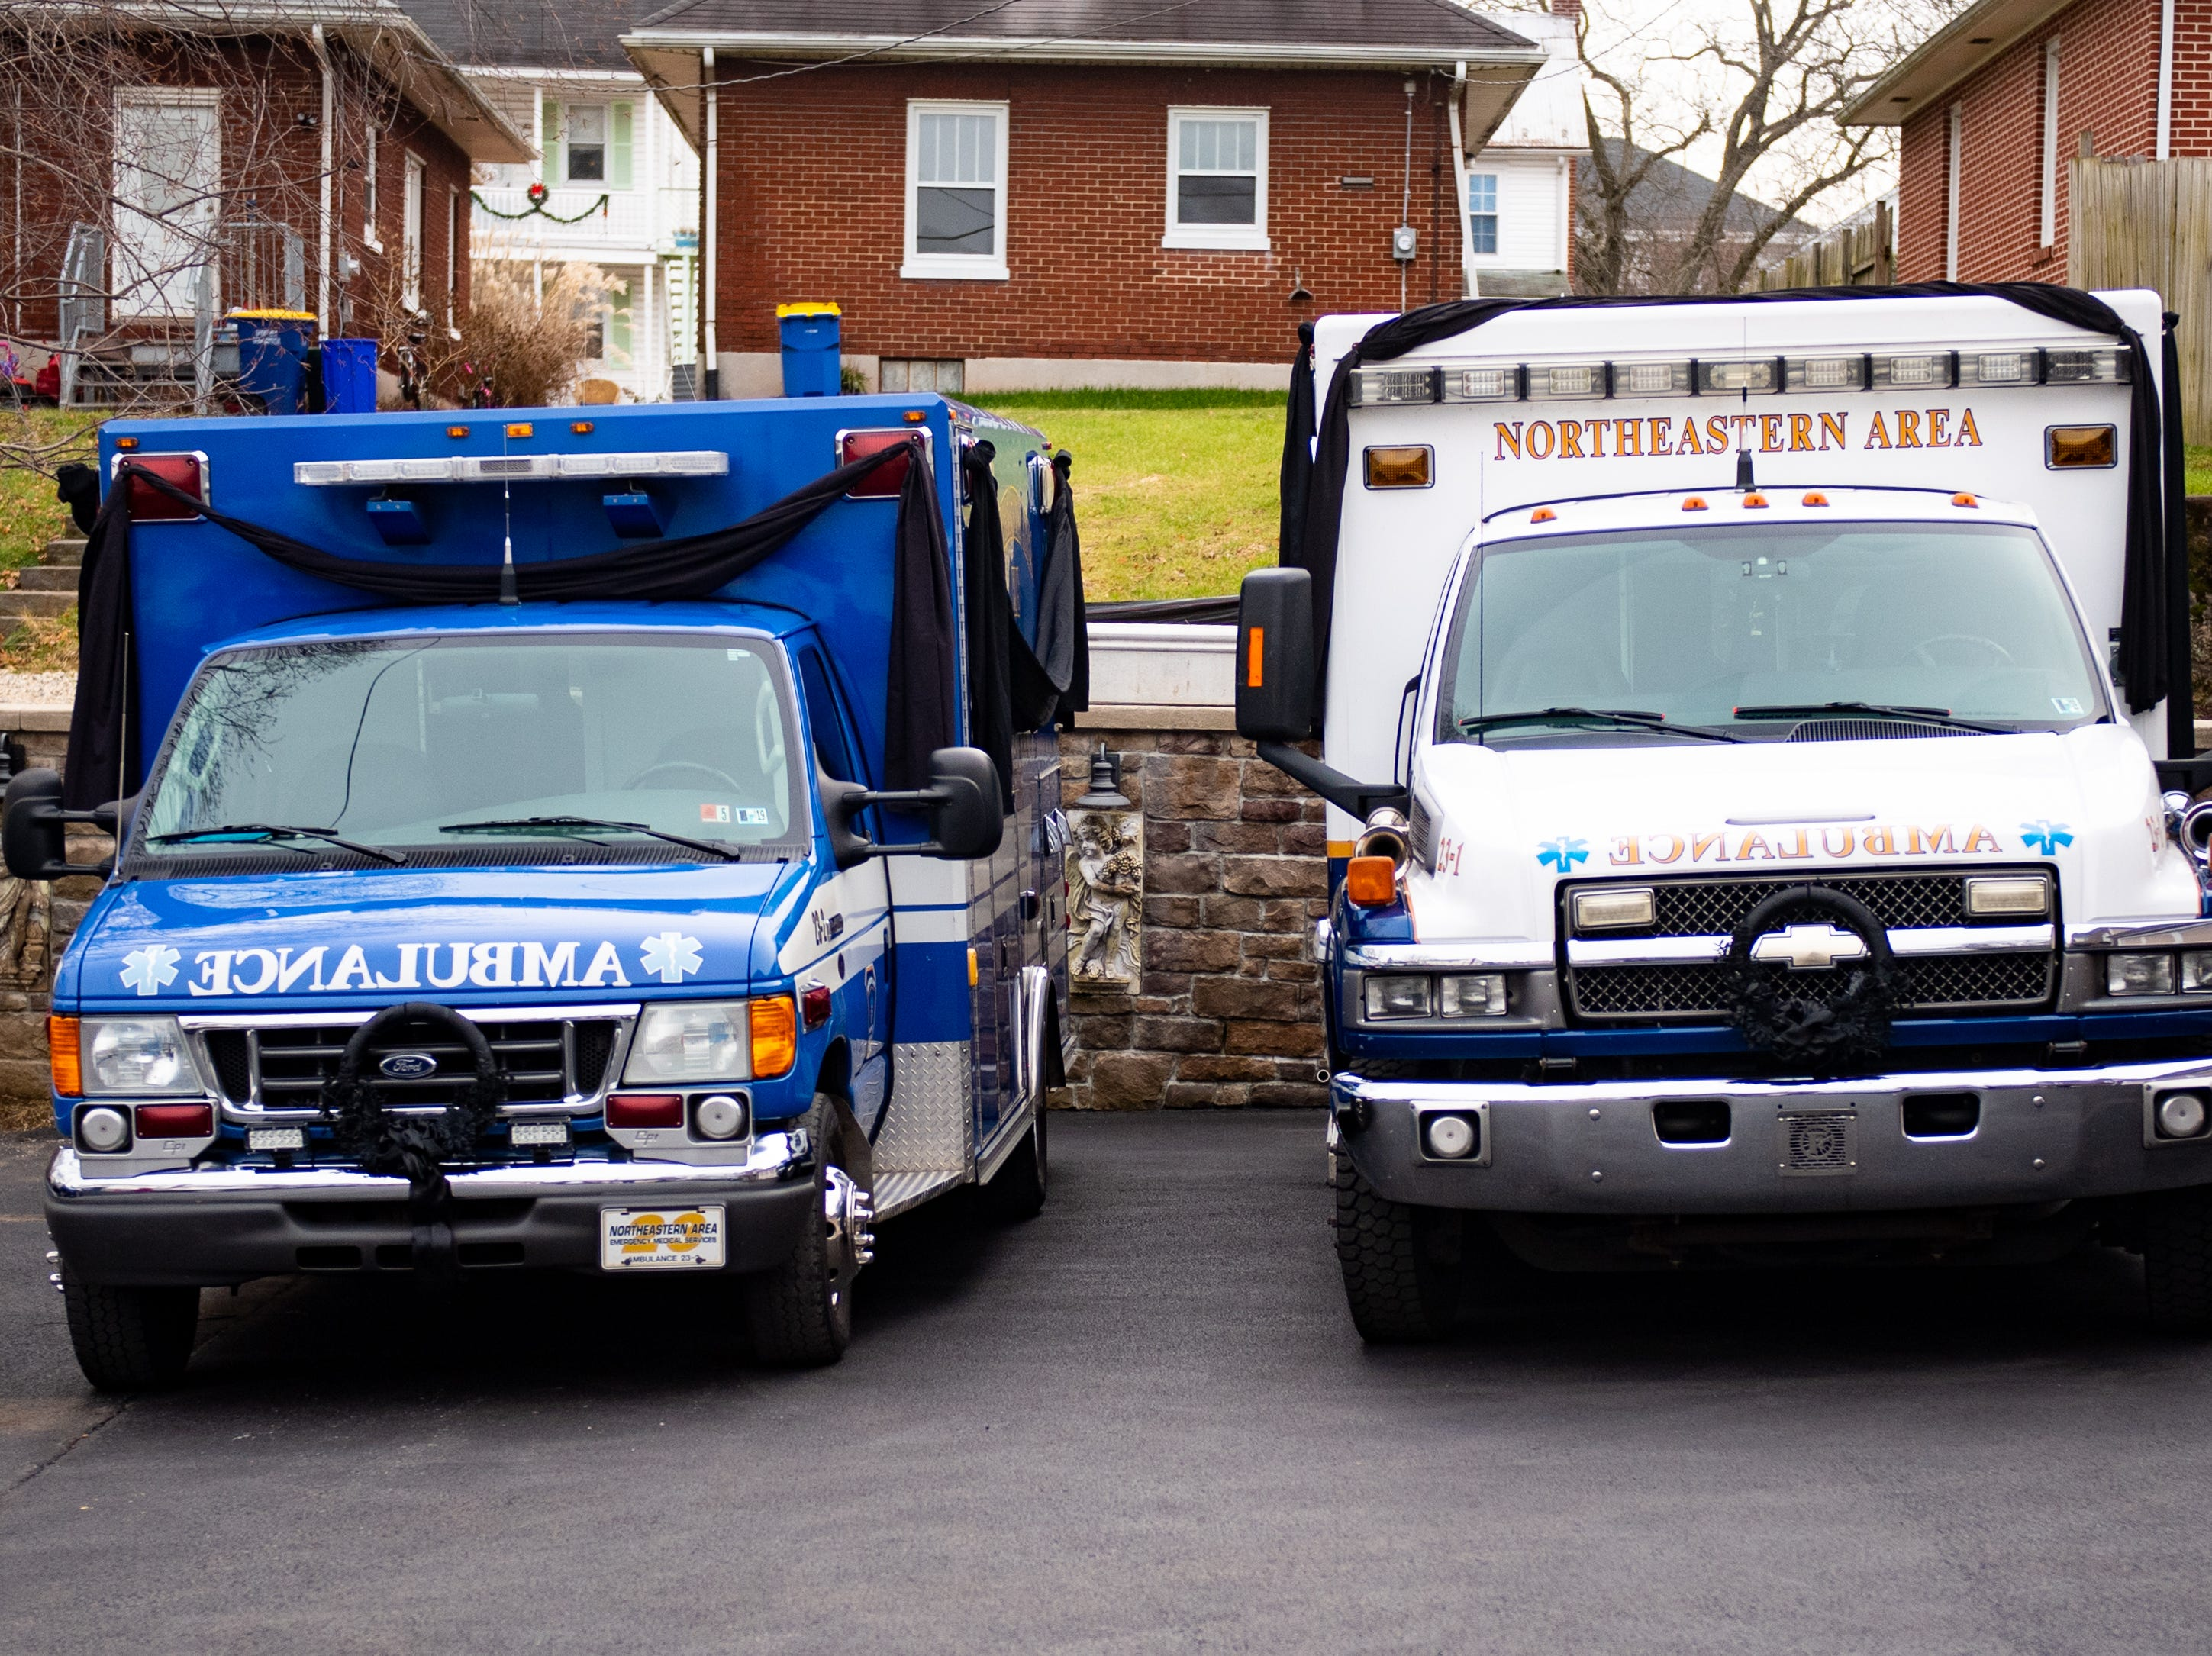 These two ambulances were used for Robert Kohler Sr.'s last ride. He rode in the white ambulance, while his family rode in the blue one, January 4, 2019.